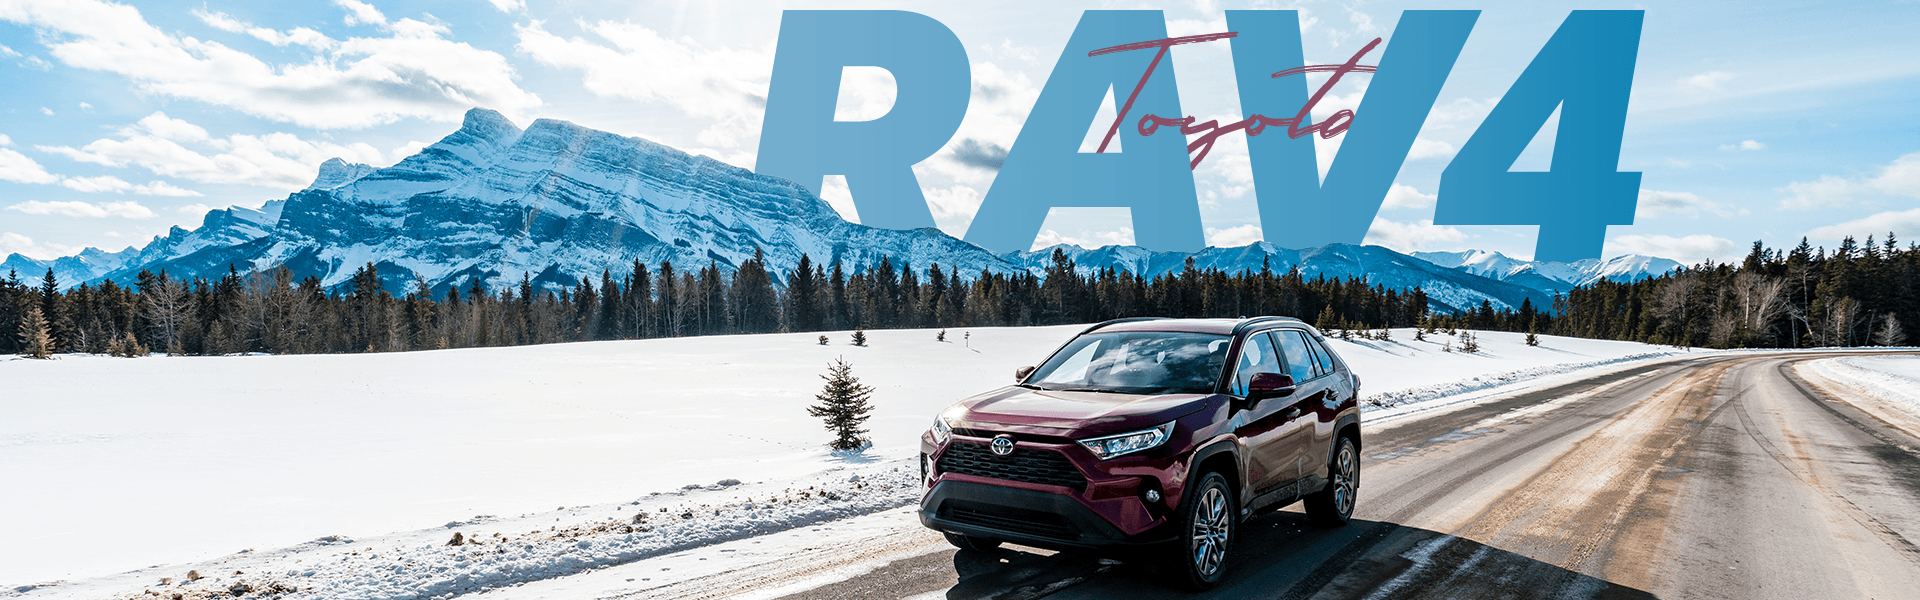 2021 Toyota RAV4 AWD Limited